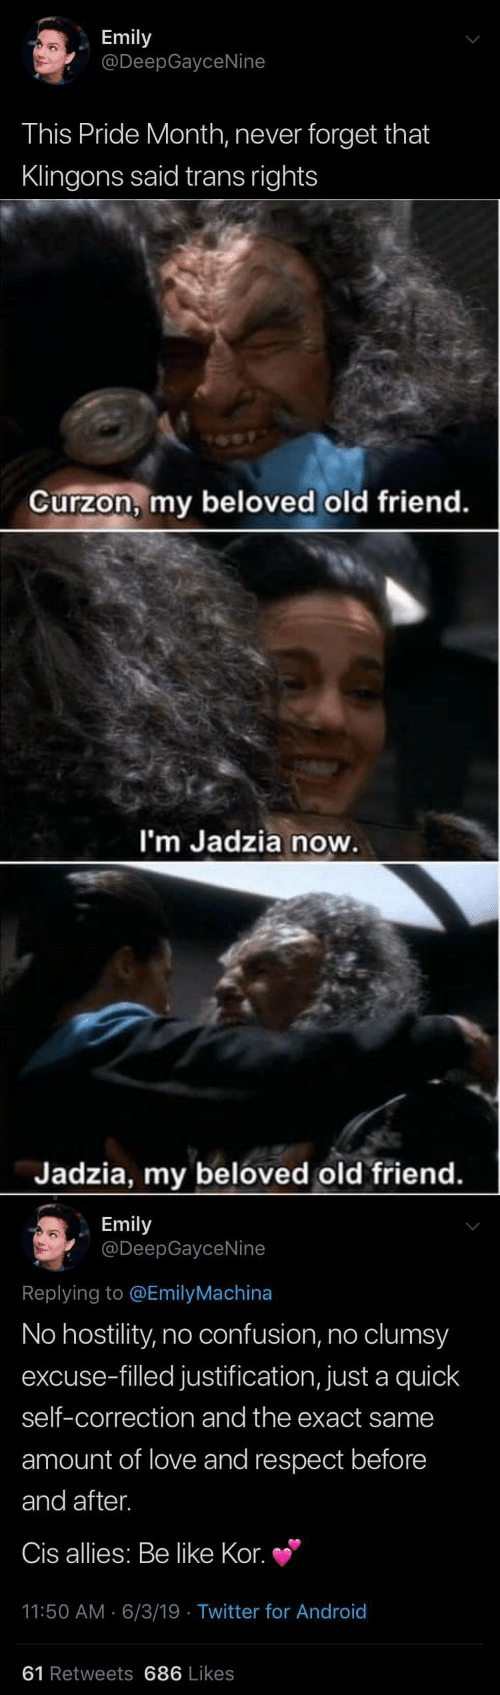 Correction: Emily  @DeepGayceNine  This Pride Month, never forget that  Klingons said trans rights   Curzon, my beloved old friend.  I'm Jadzia now.  Jadzia, my beloved old friend.   Emily  @DeepGayceNine  Replying to @EmilyMachina  No hostility, no confusion, no clumsy  excuse-filled justification, just a quick  self-correction and the exact same  amount of love and respect before  and after.  Cis allies: Be like Kor.  11:50 AM 6/3/19 Twitter for And roid  61 Retweets 686 Likes